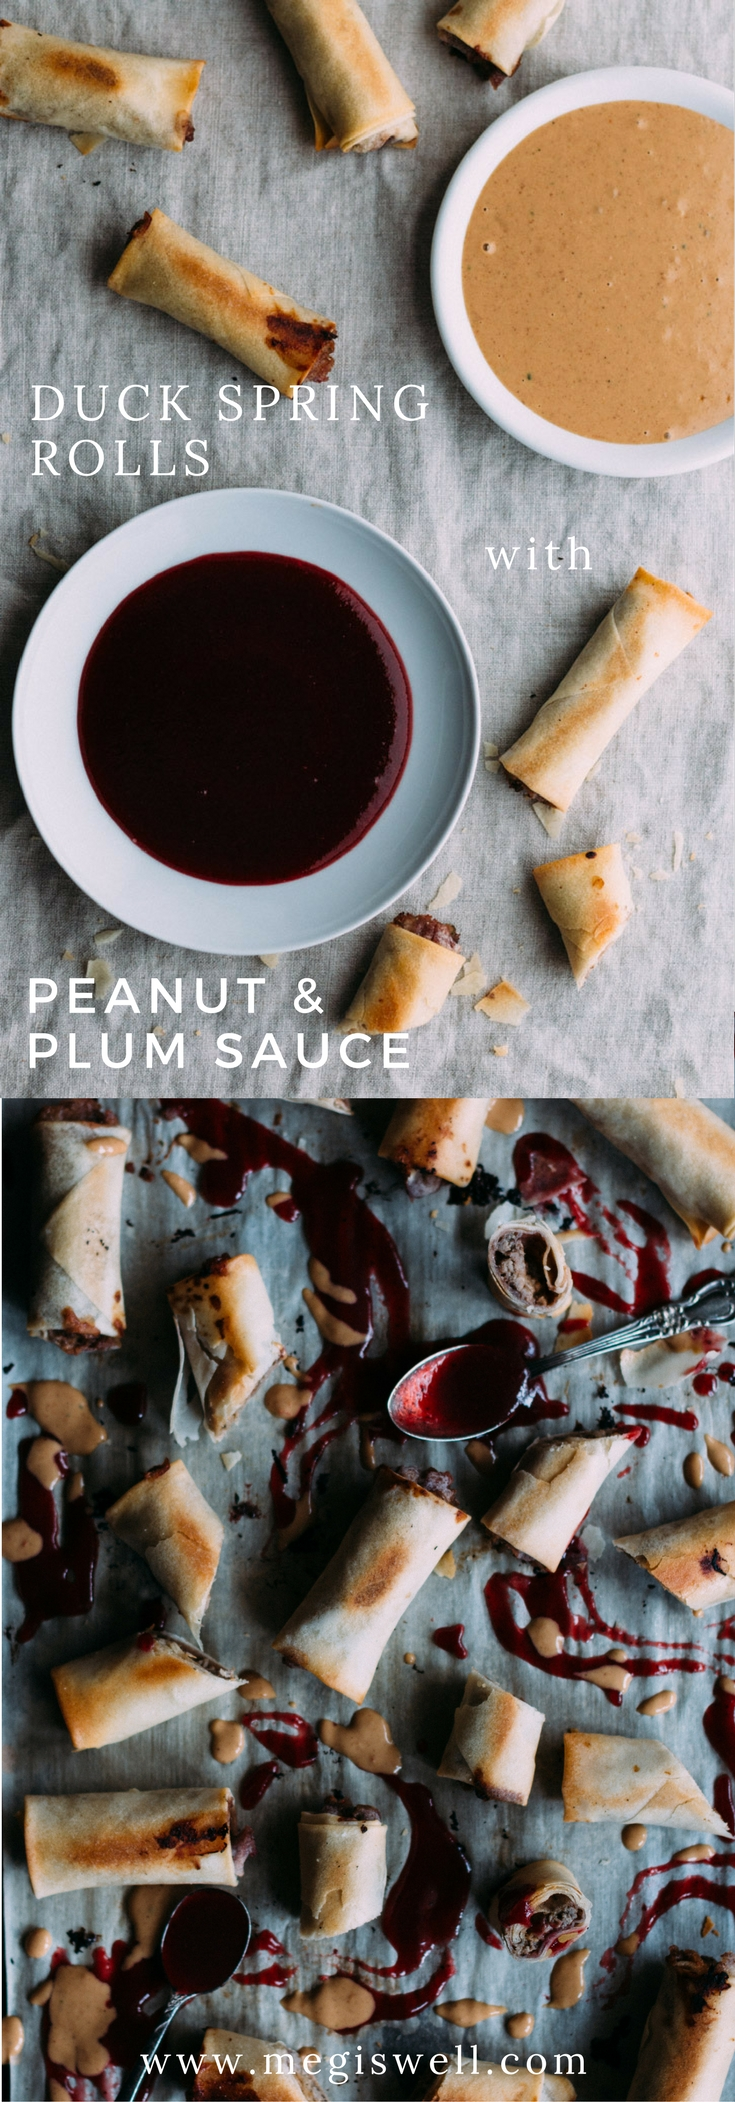 Duck and peanut sauce are wrapped up tight with a bright plum sauce in baked Chinese spring rolls for a subtle peanut butter and jelly twist. | #dimsum #appetizer #side #snack | www.megiswell.com